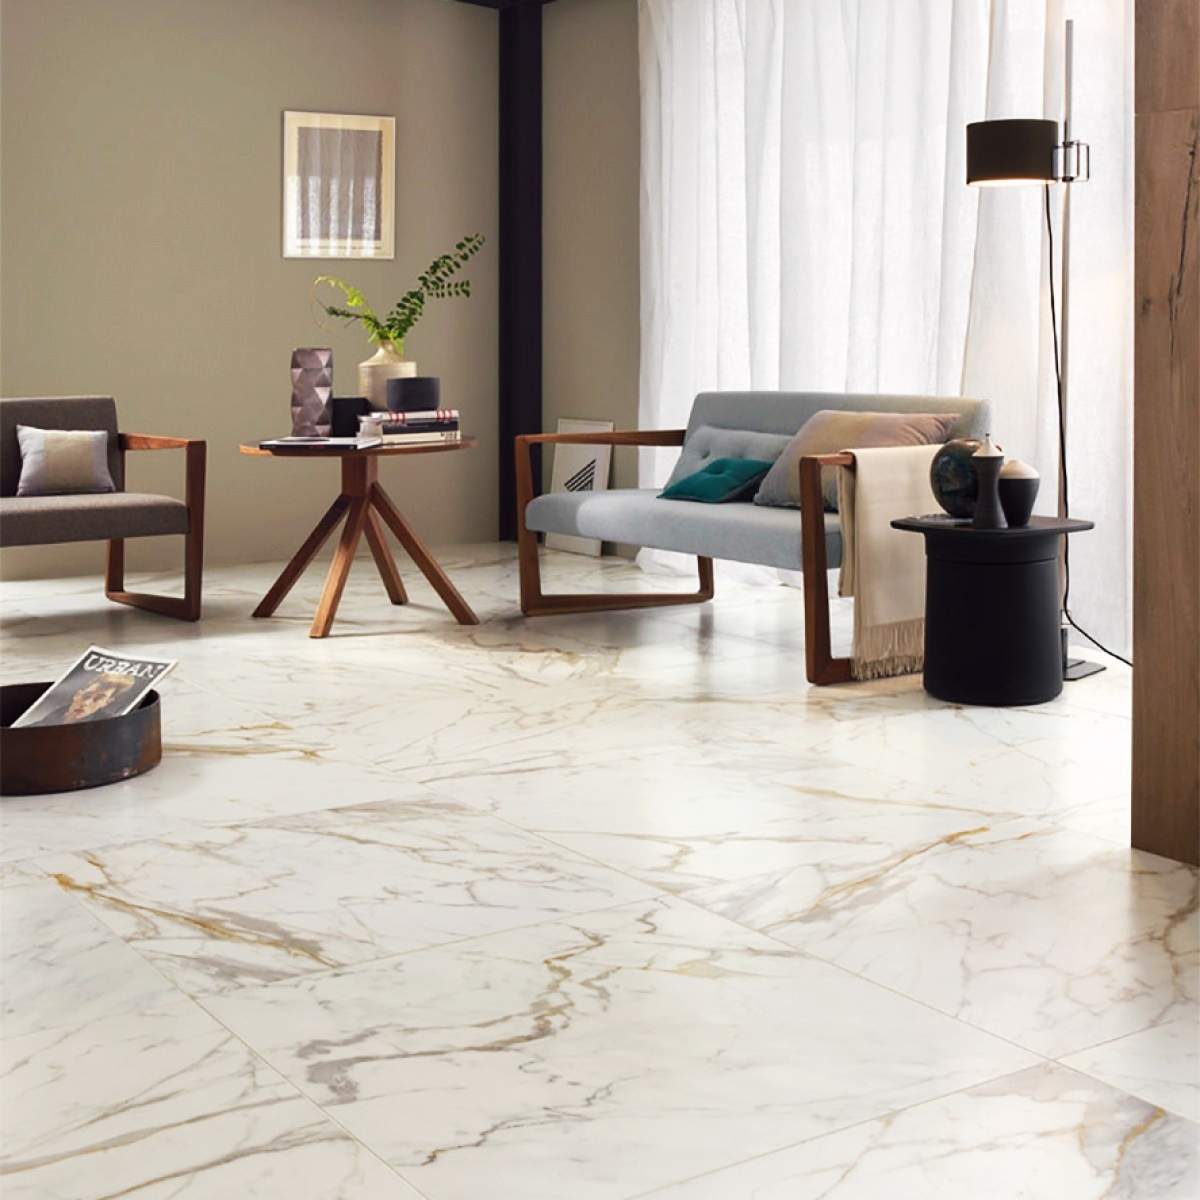 The Best Ways To Use Michelangelo White Marble from Portugal In Interior  Design | Bhandari Marble Group